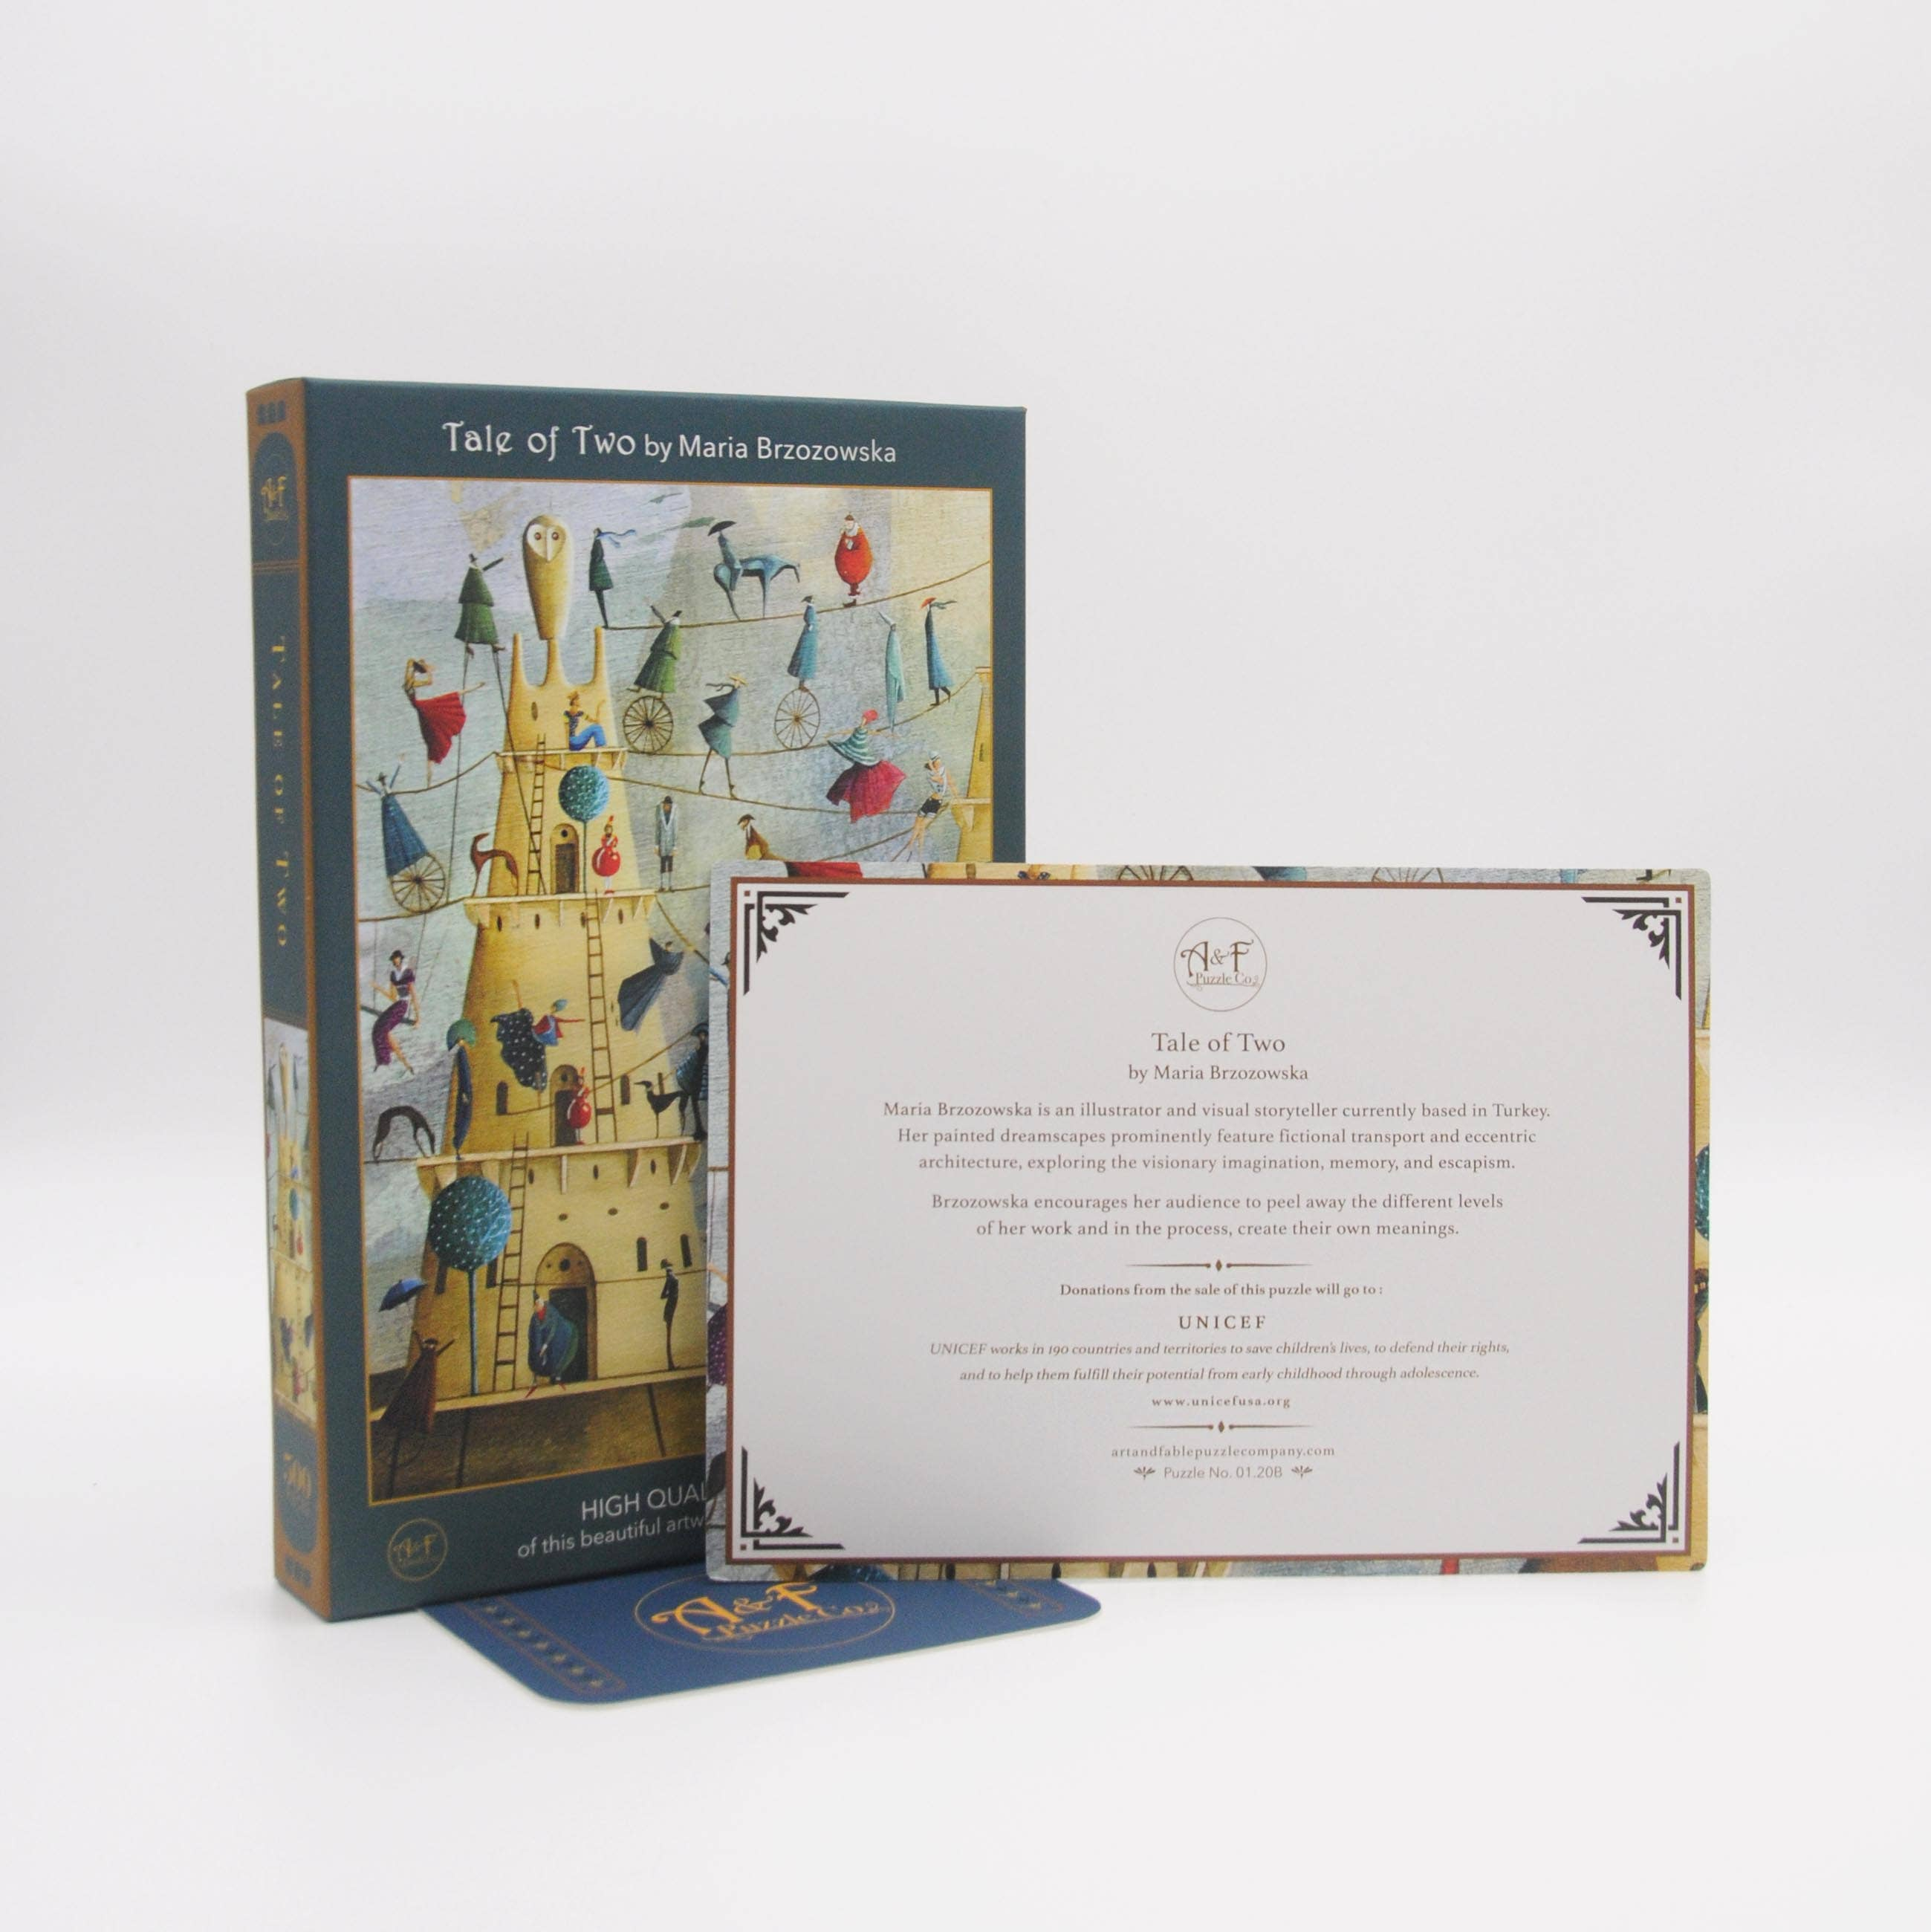 Tale of Two; 500-Piece Velvet-Touch Jigsaw Puzzle featuring the art of Maria Brzozowska | Trada Marketplace